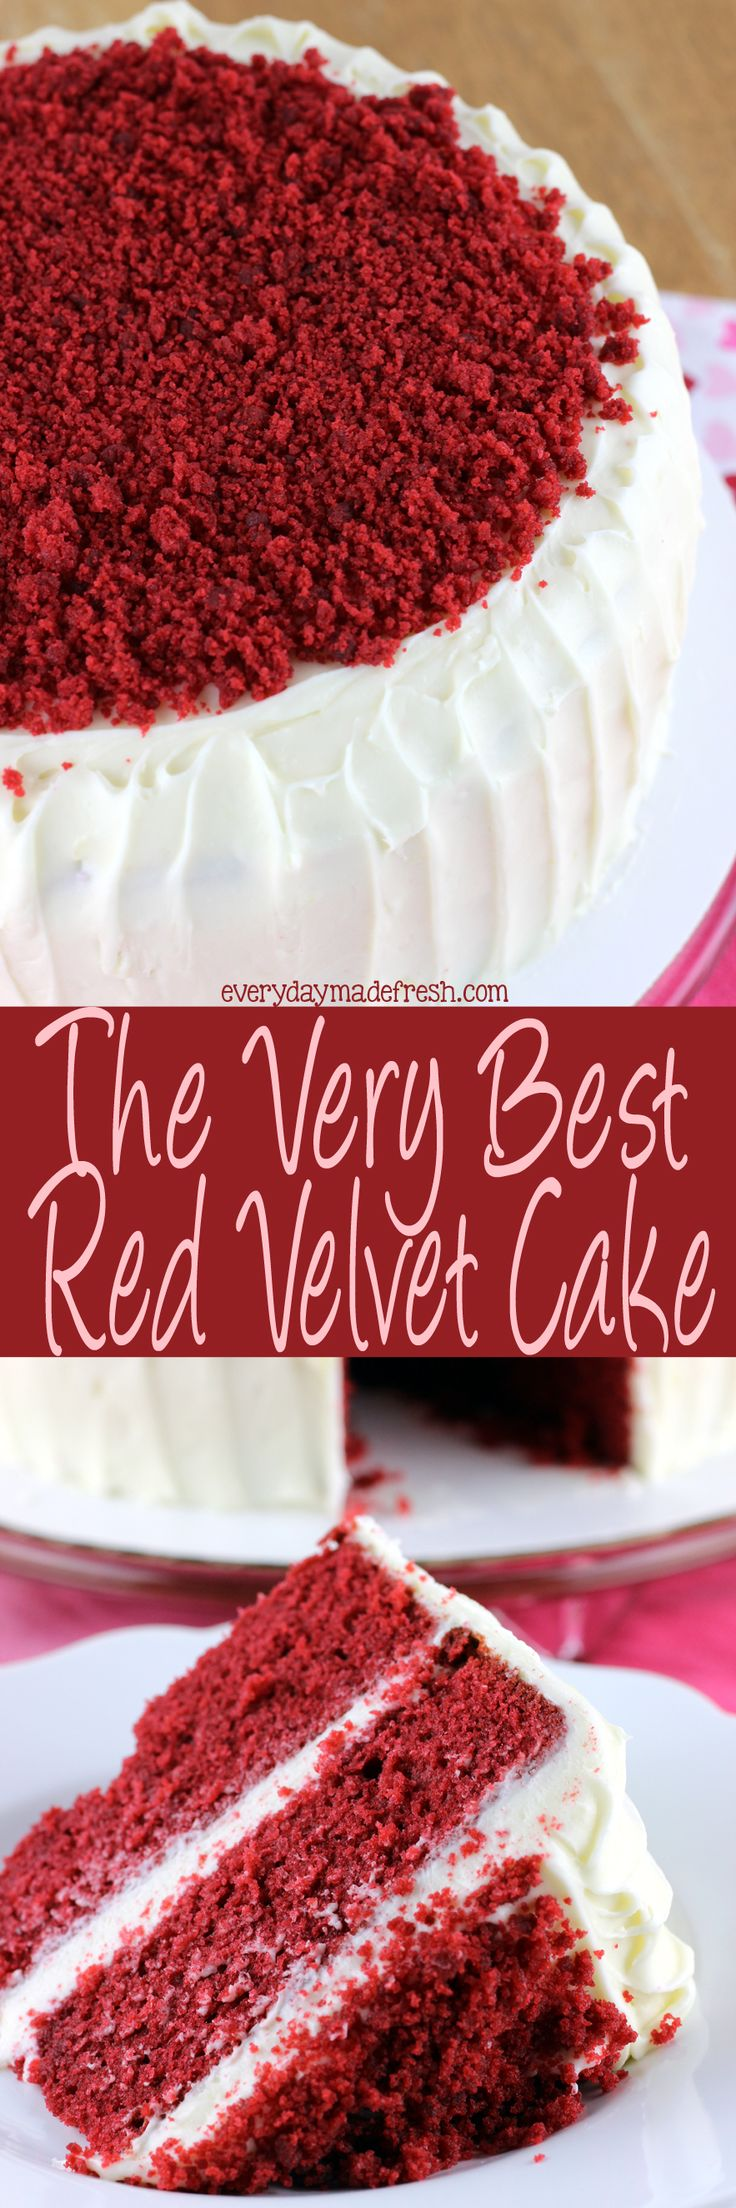 The only red velvet cake recipe you'll ever need is here! This is The Very Best Red Velvet Cake. It's perfectly moist, decadent, and so simple to make. | EverydayMadeFresh.com http://www.everydaymadefresh.com/best-red-velvet-cake/